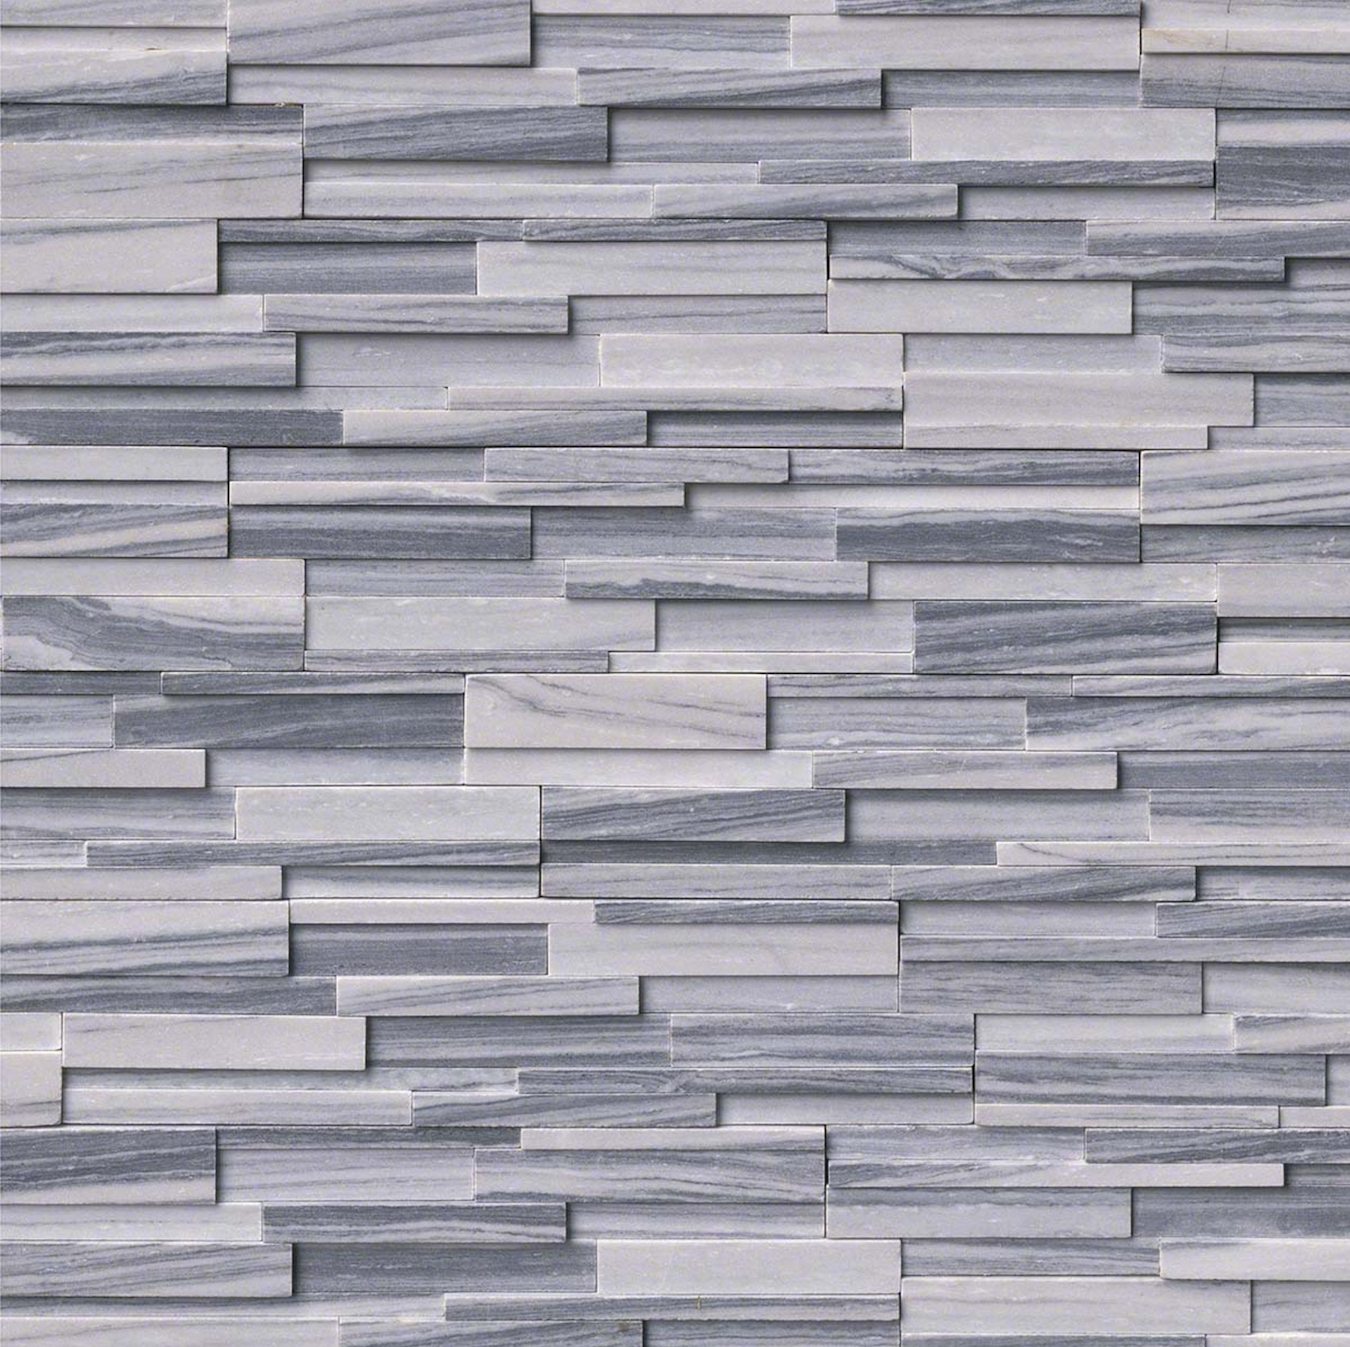 M S International, Inc. Introduces New Stacked Stone Colors